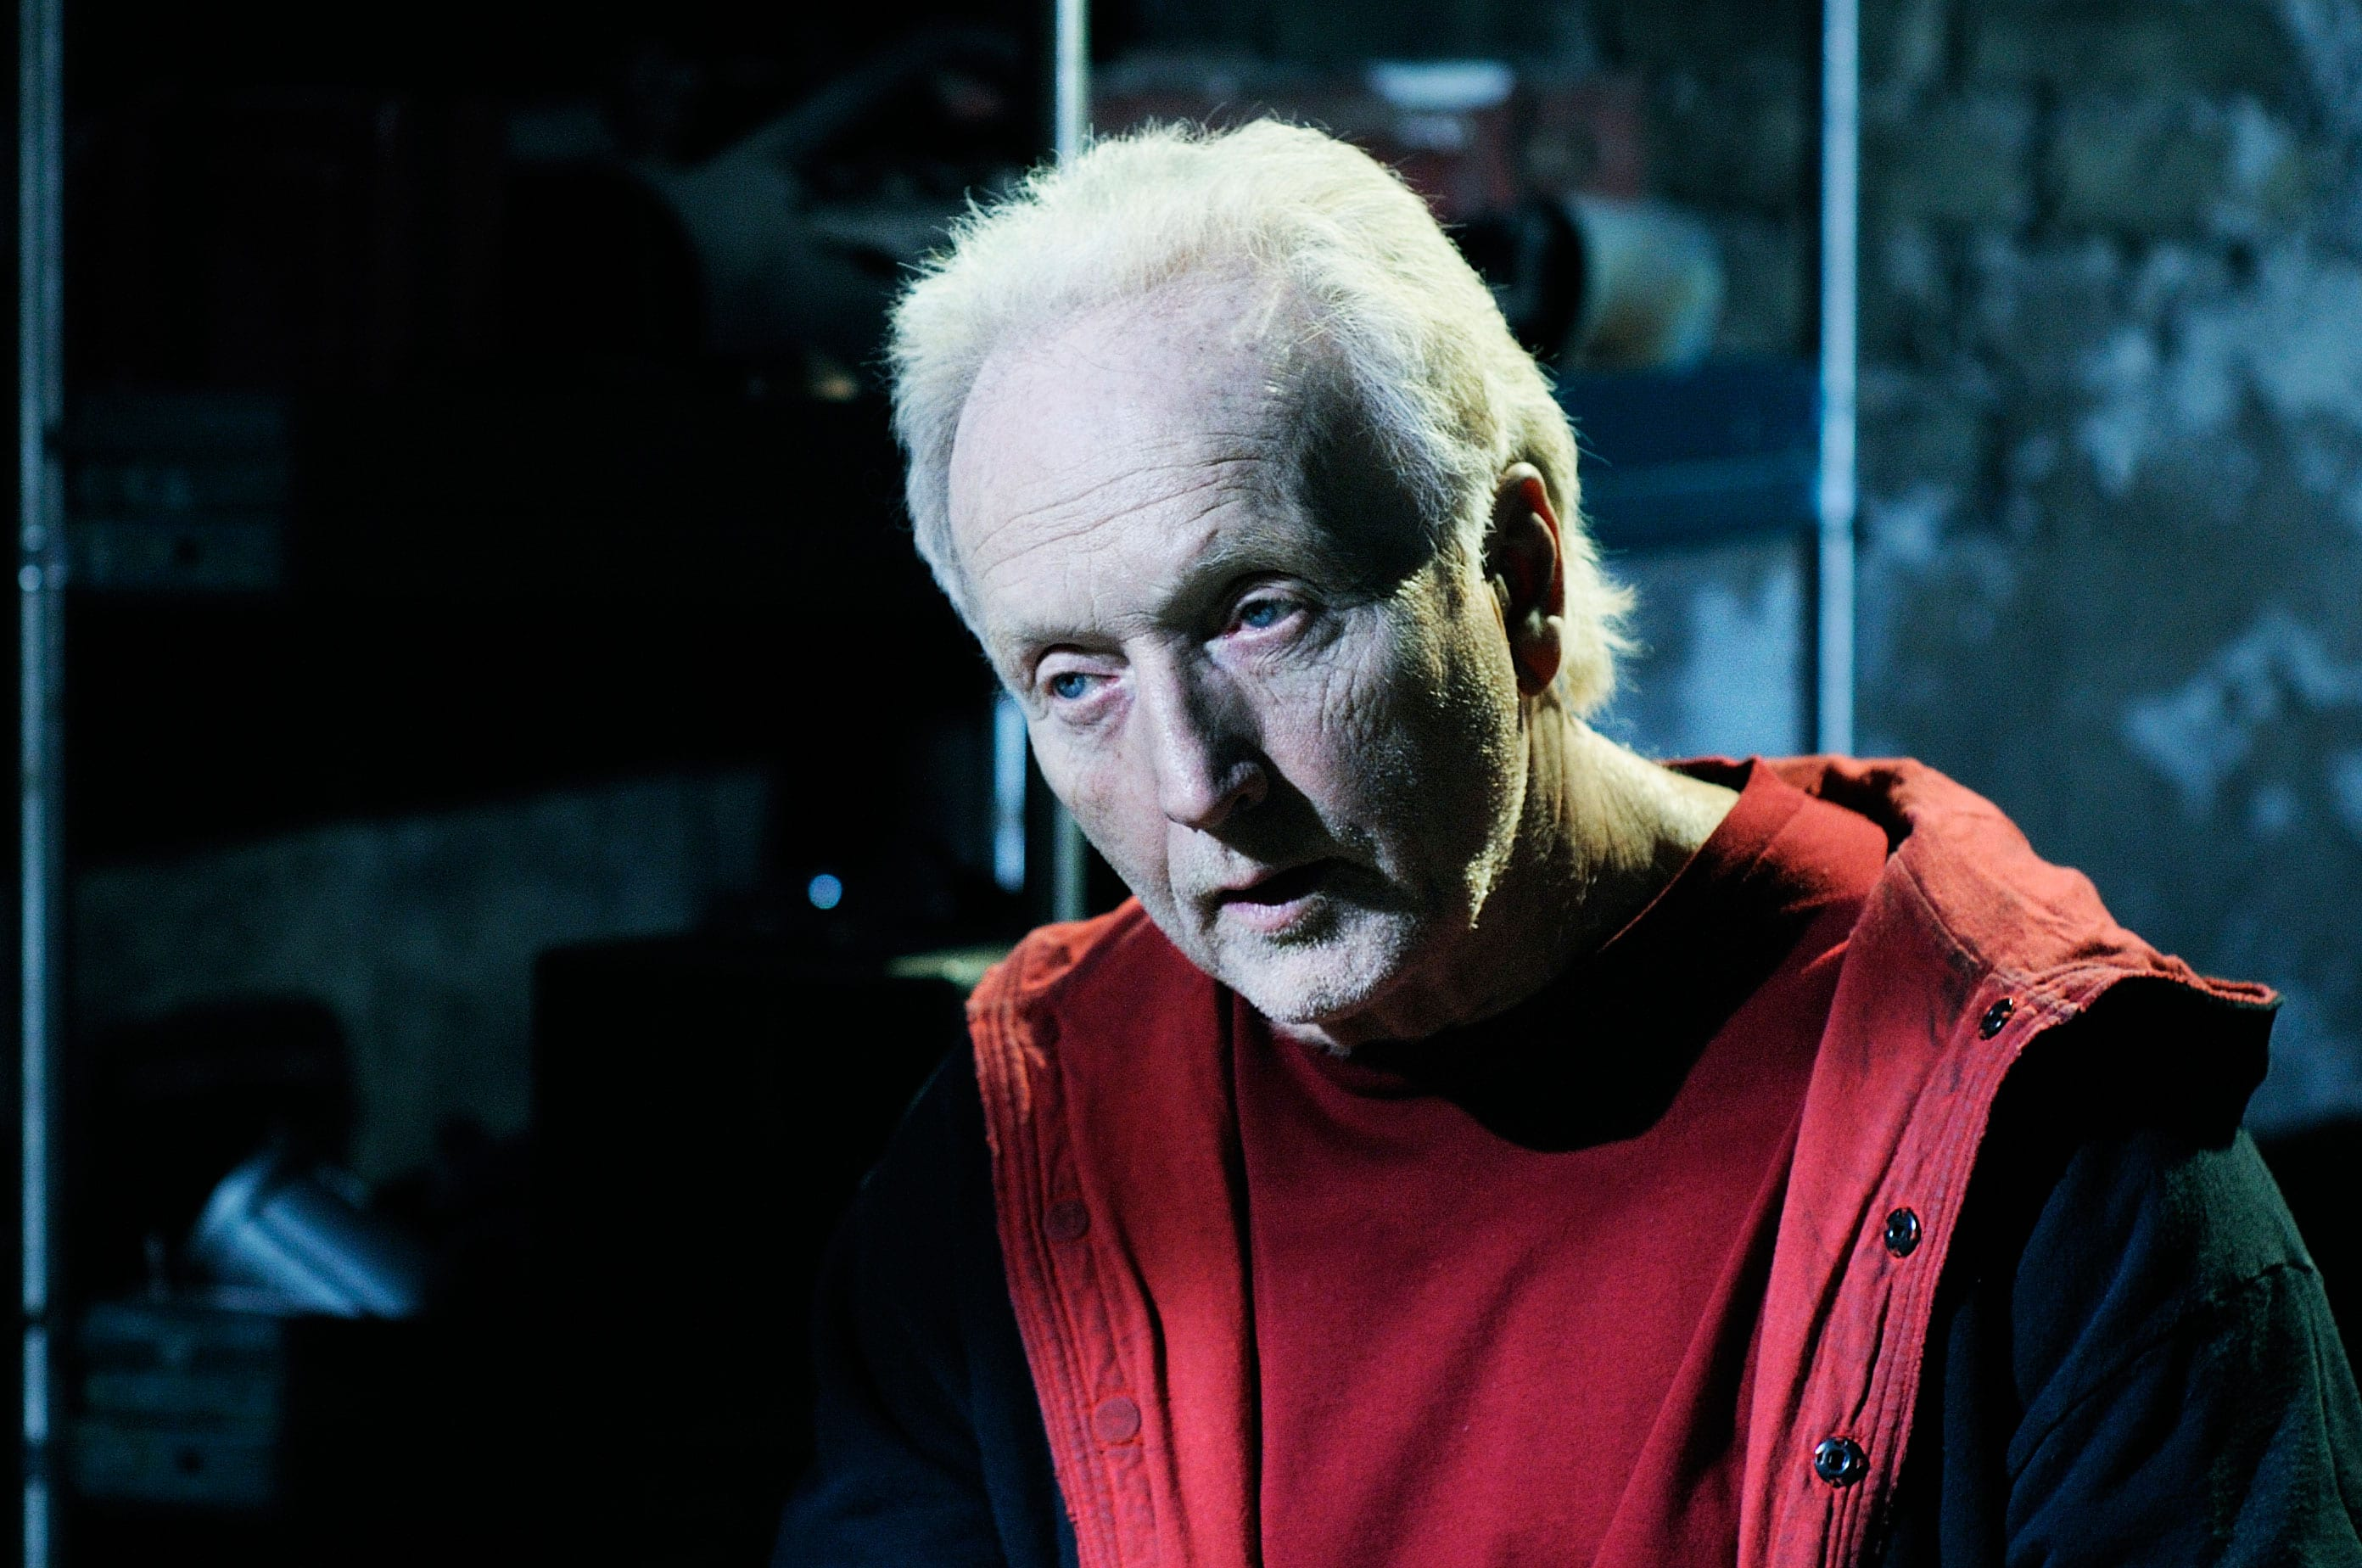 Tobin Bell HQ wallpapers